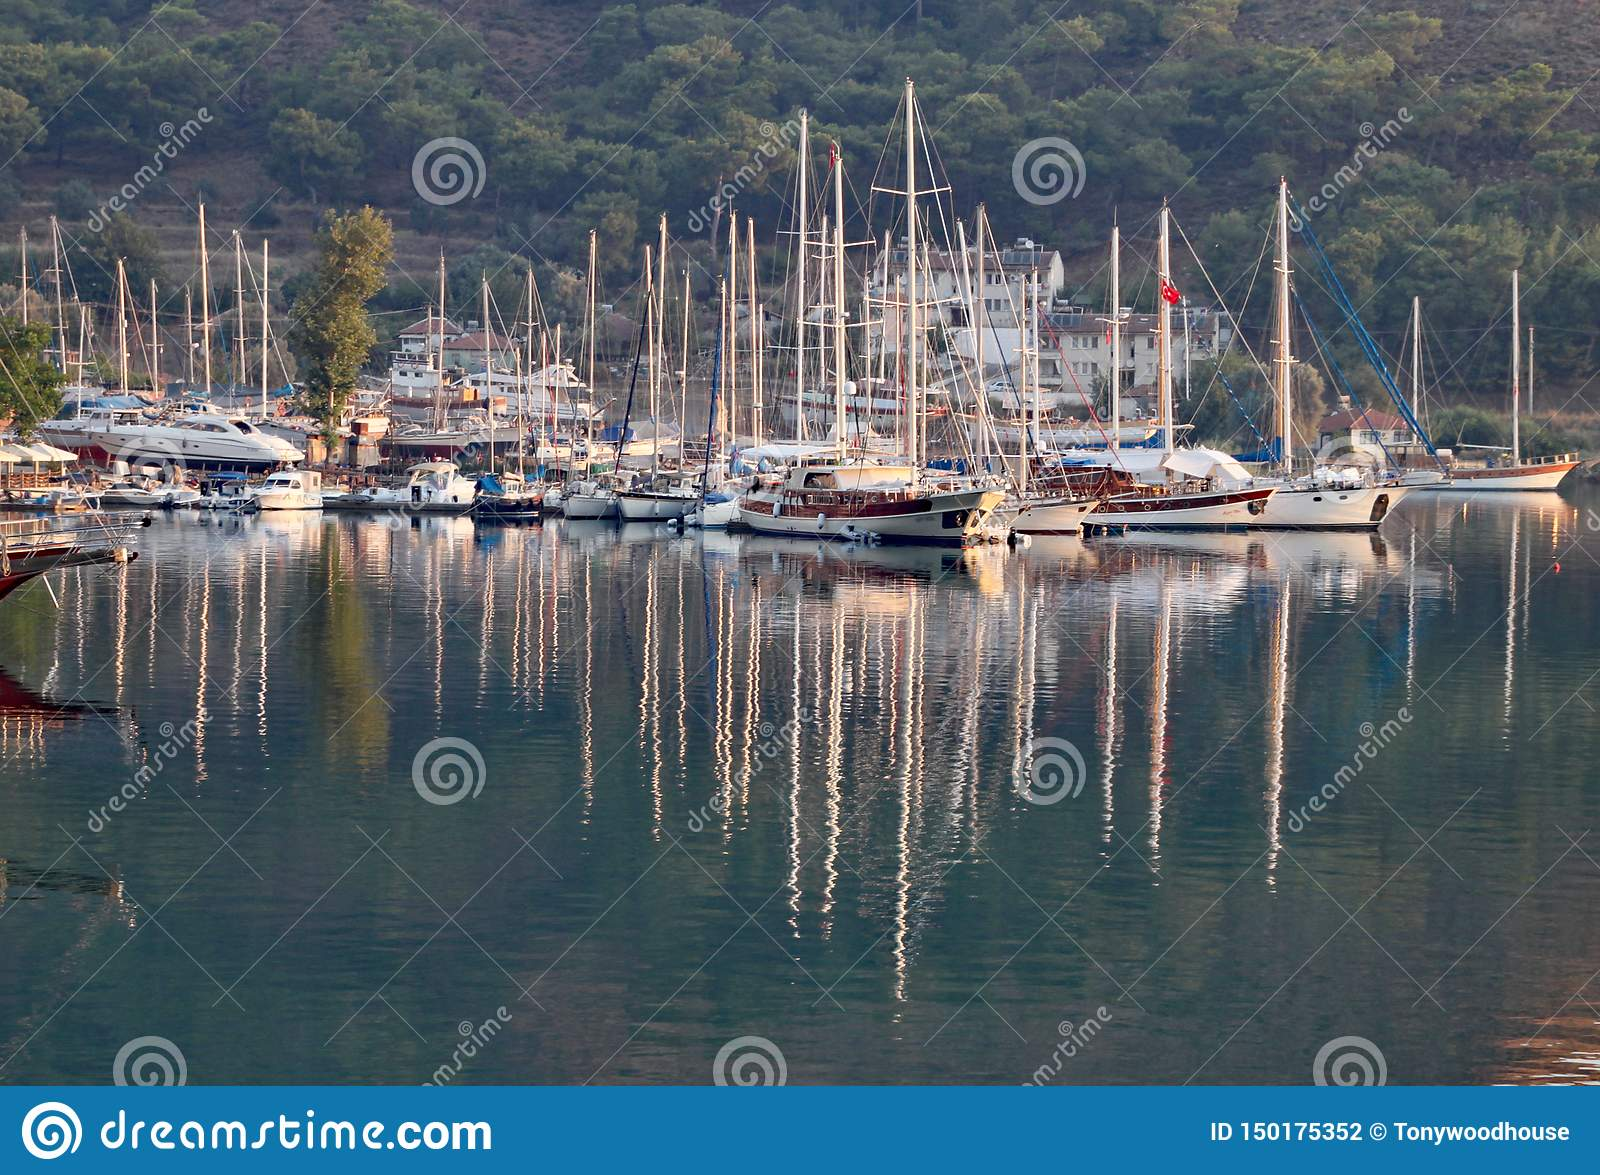 Reflections of yachts at Marmaris on a beautiful summer evening